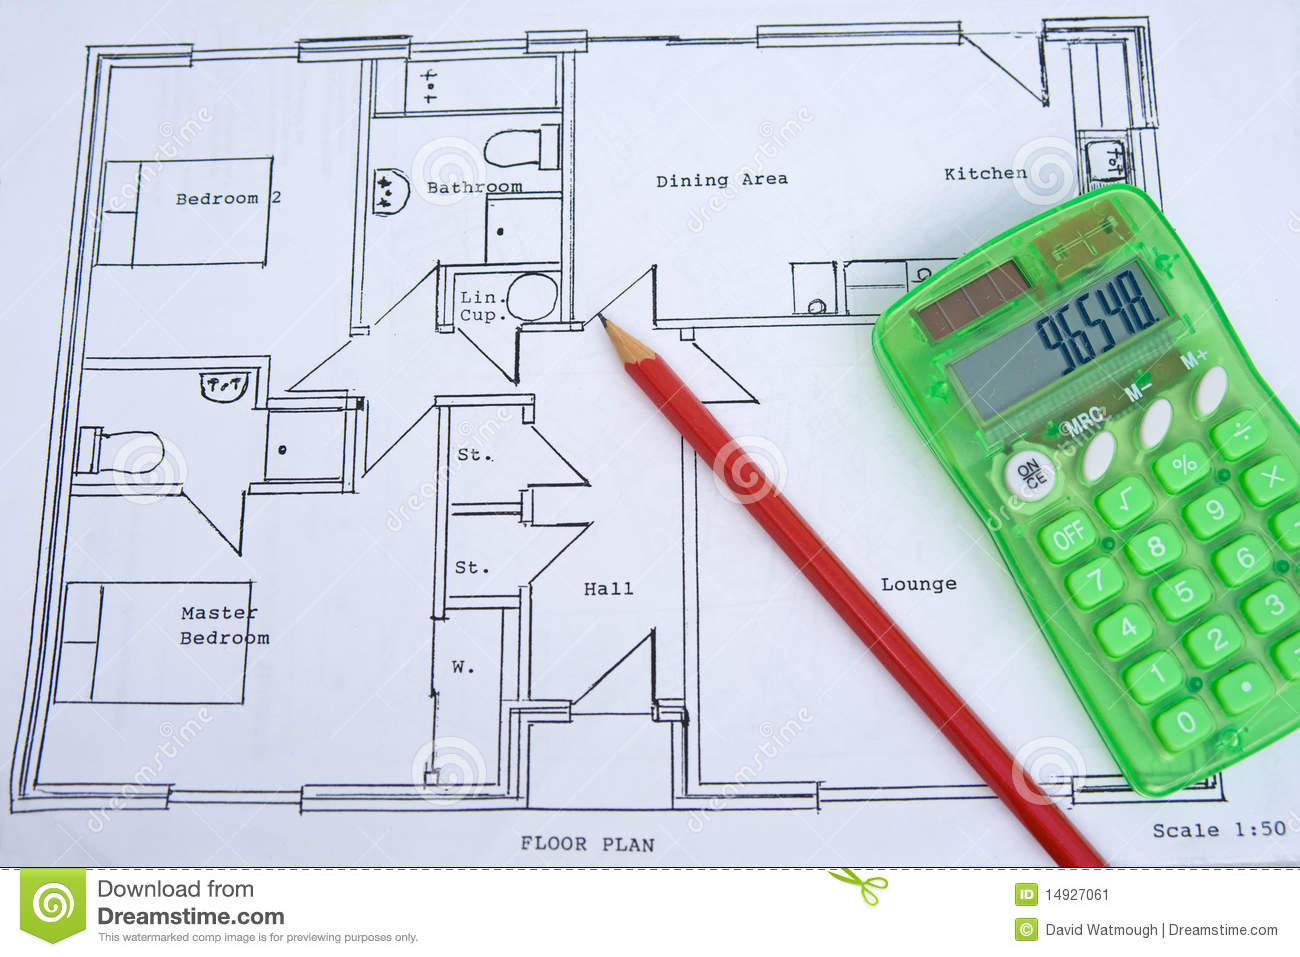 Five important points to downsizing